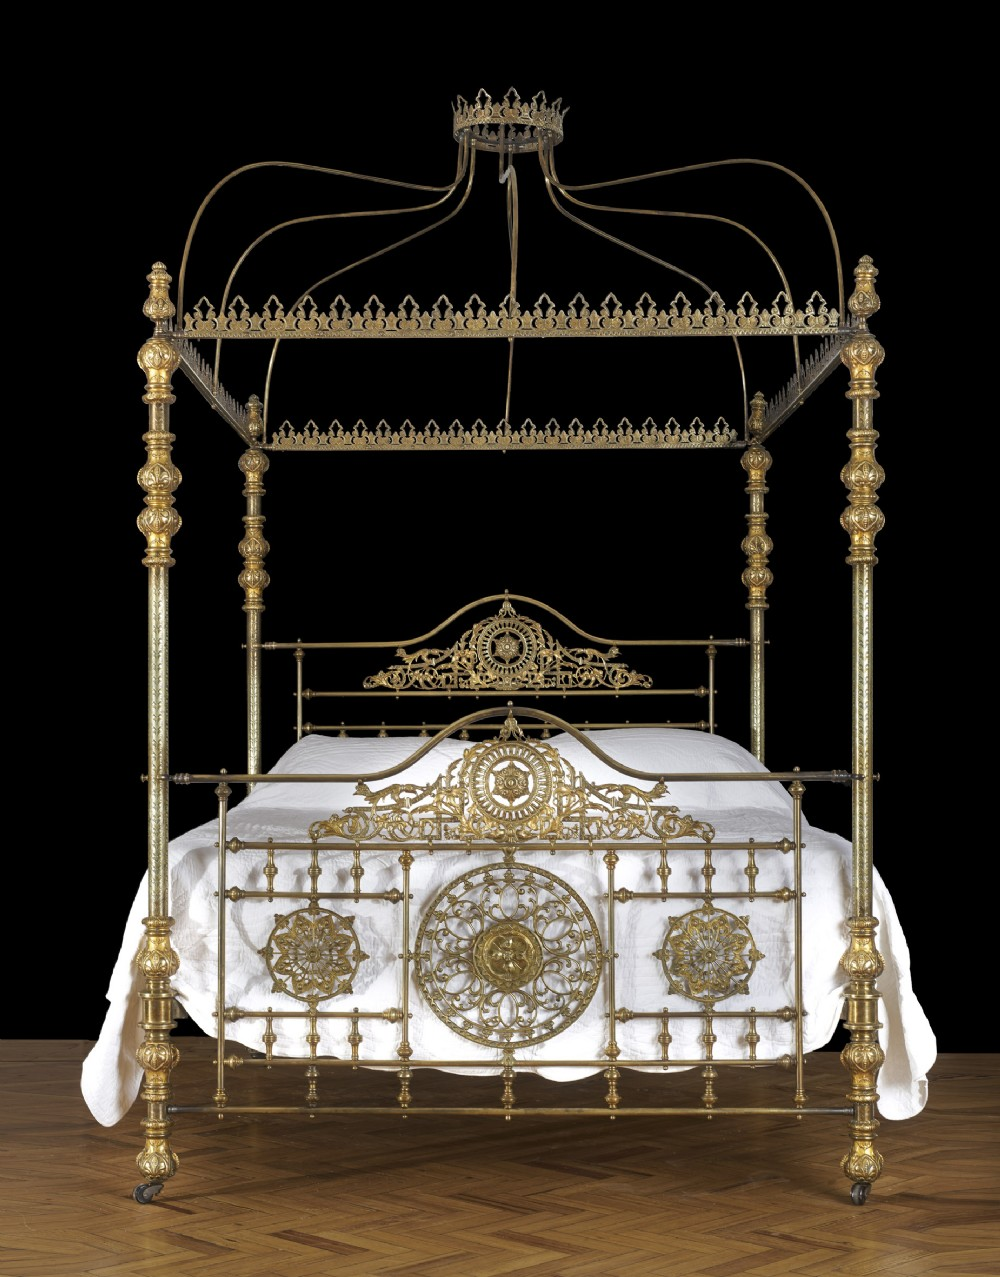 The Most Spectacular Winfield 6ft Super King Size All Brass Four Poster Bed 662867 Sellingantiques Co Uk